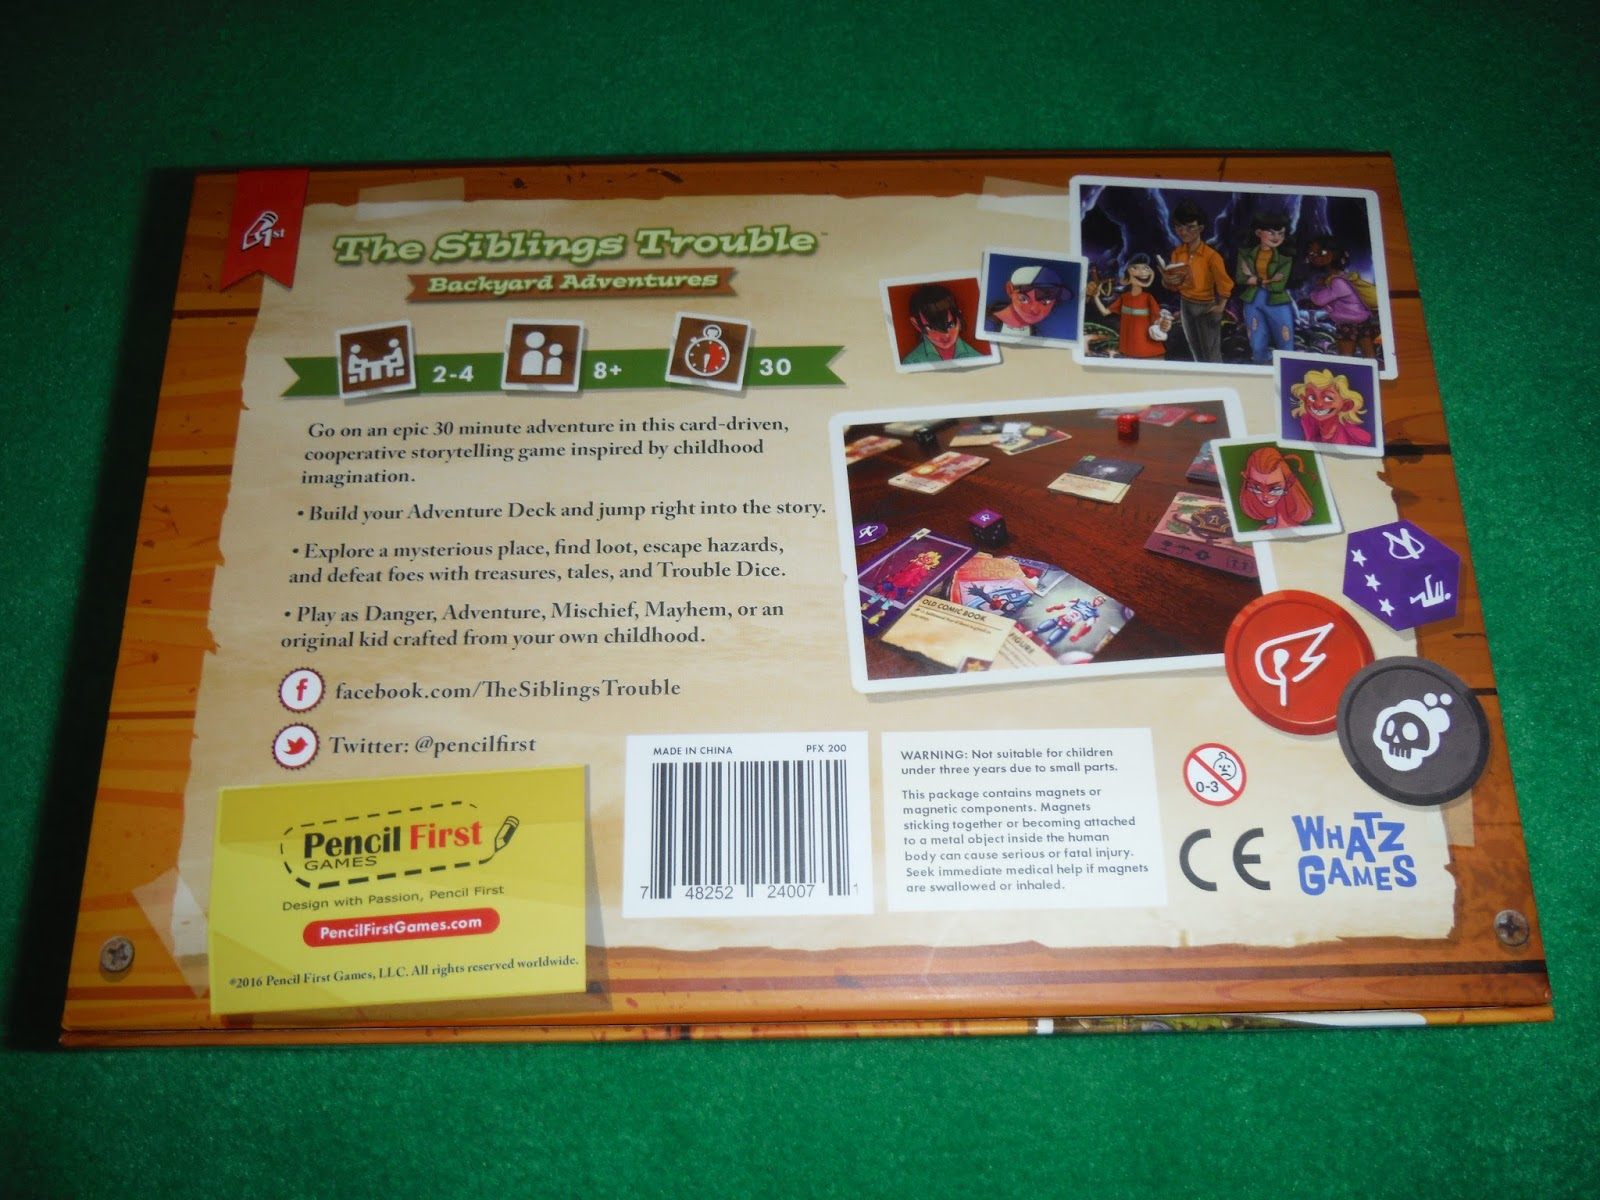 kentucky bored gamer review the siblings trouble